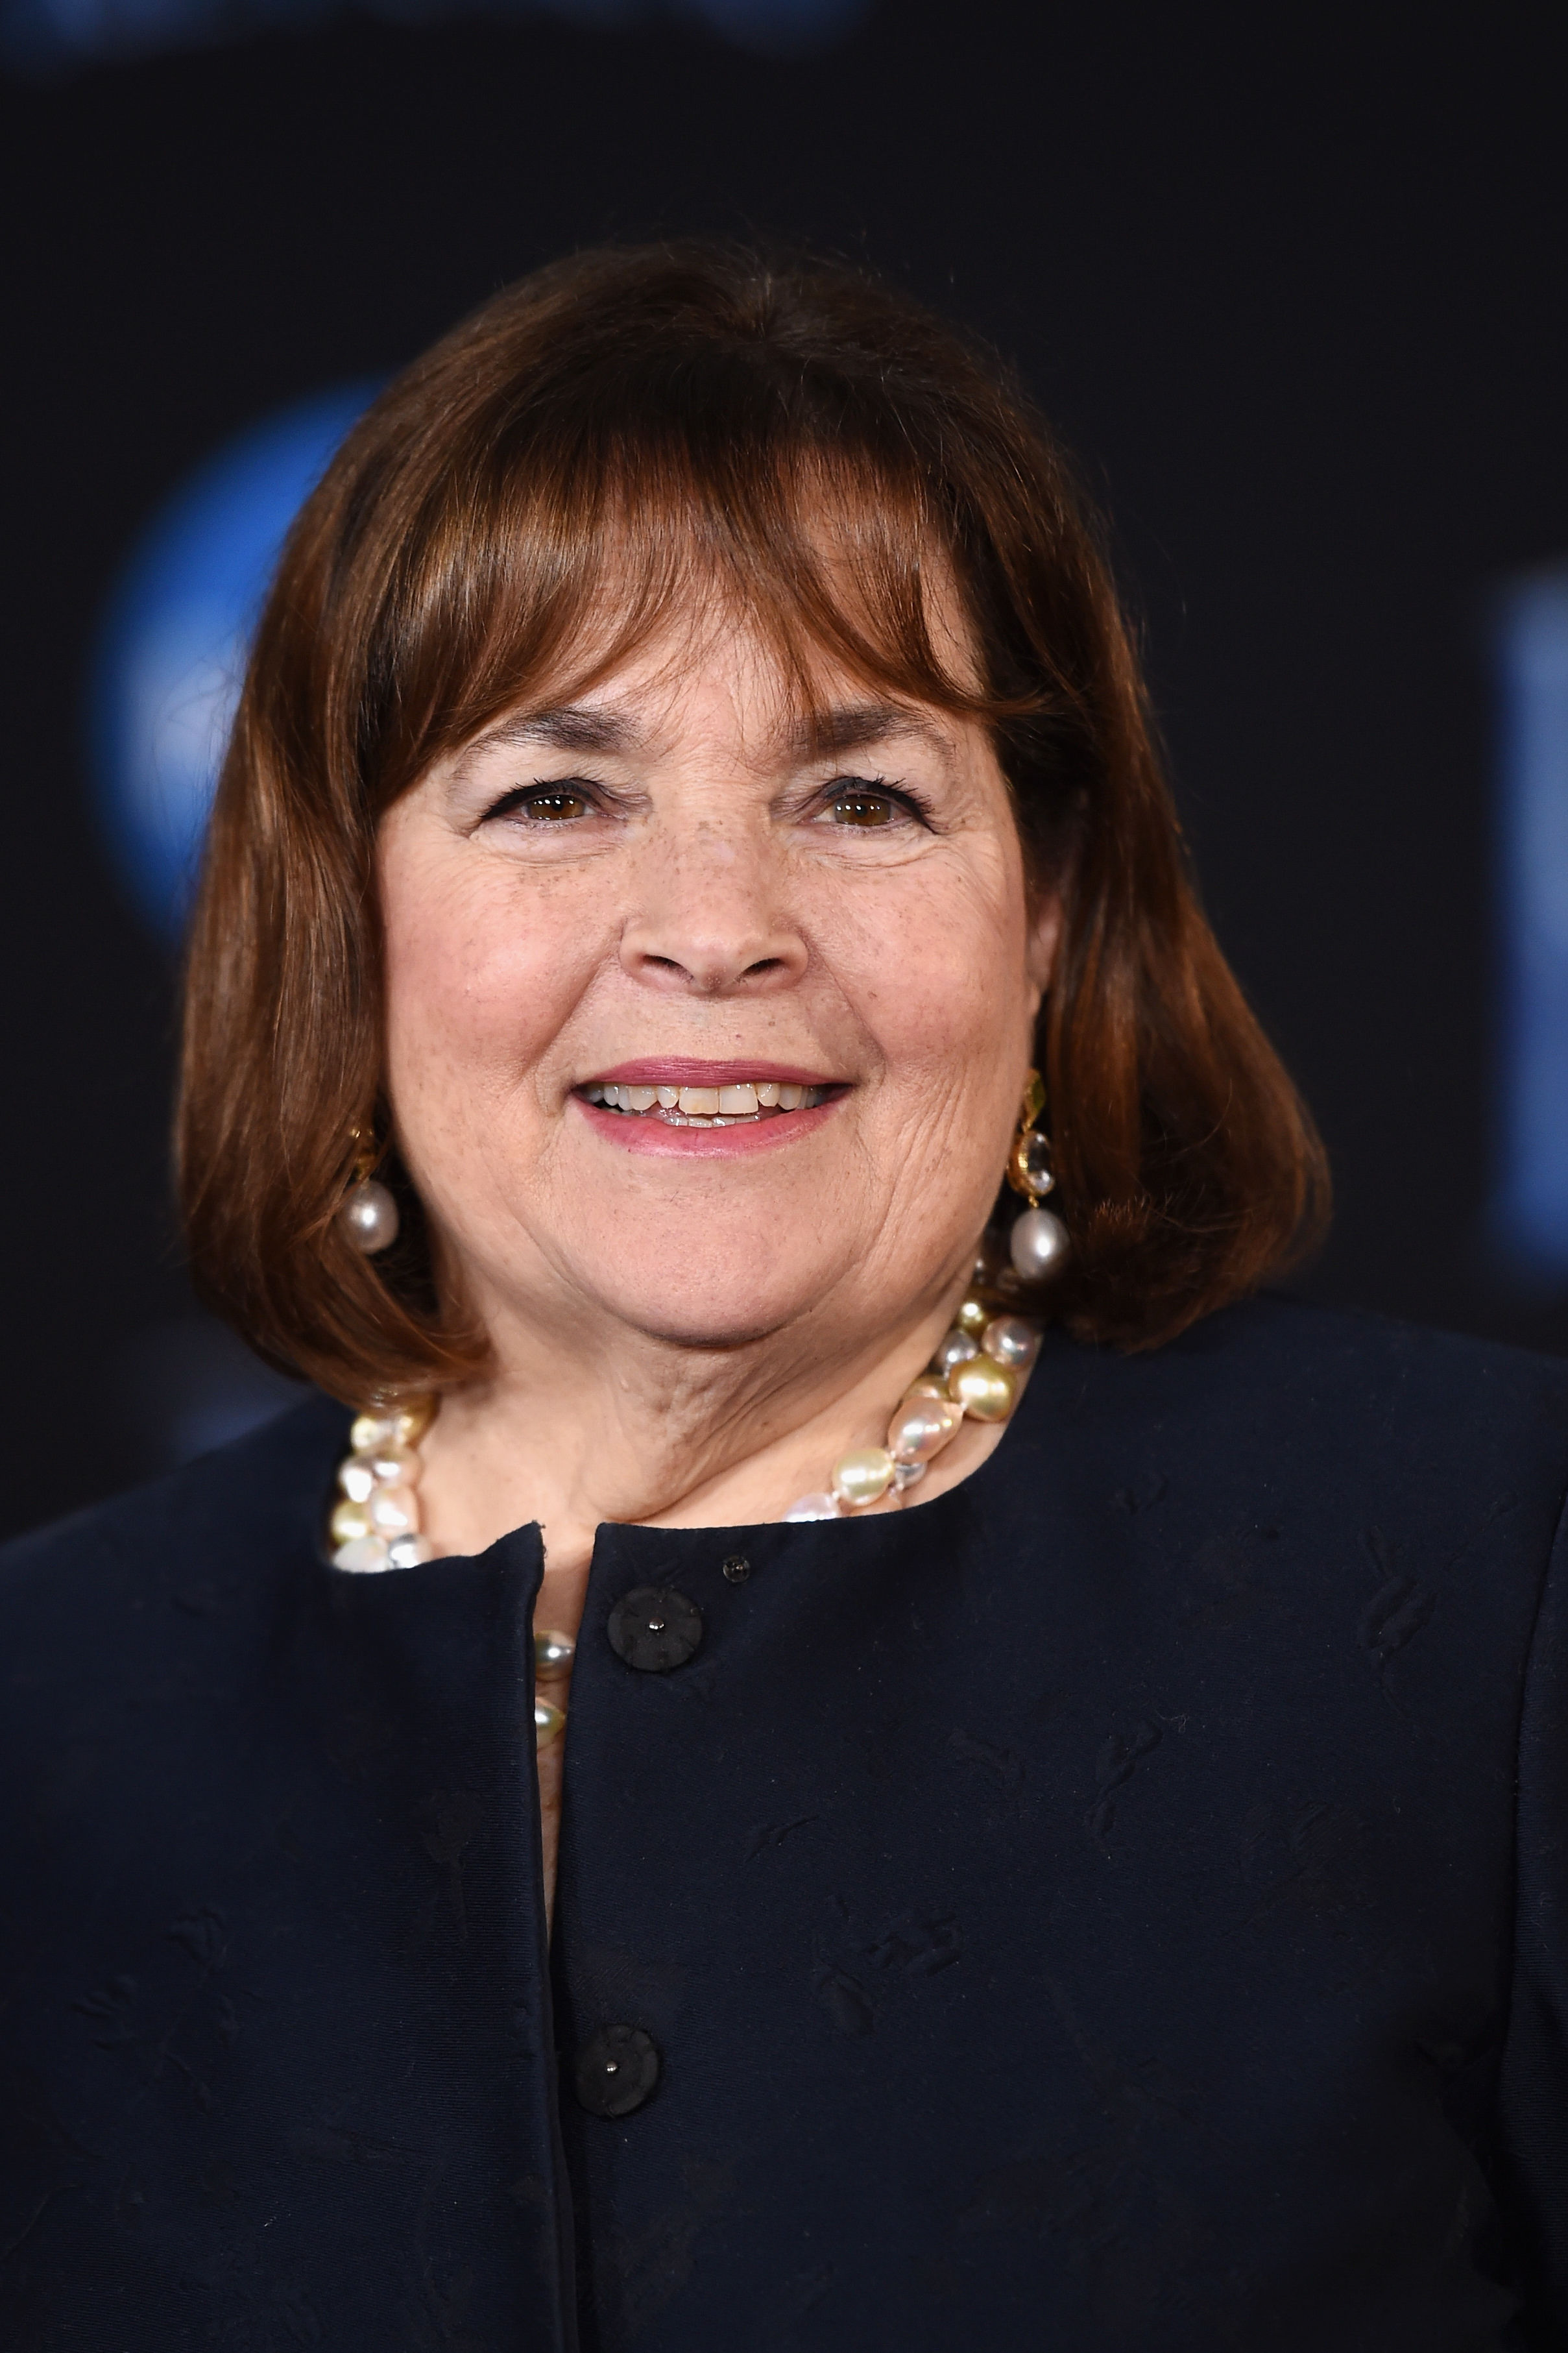 WATCH: Ina Garten Has the Most Genius Tip to Save Your Tulips